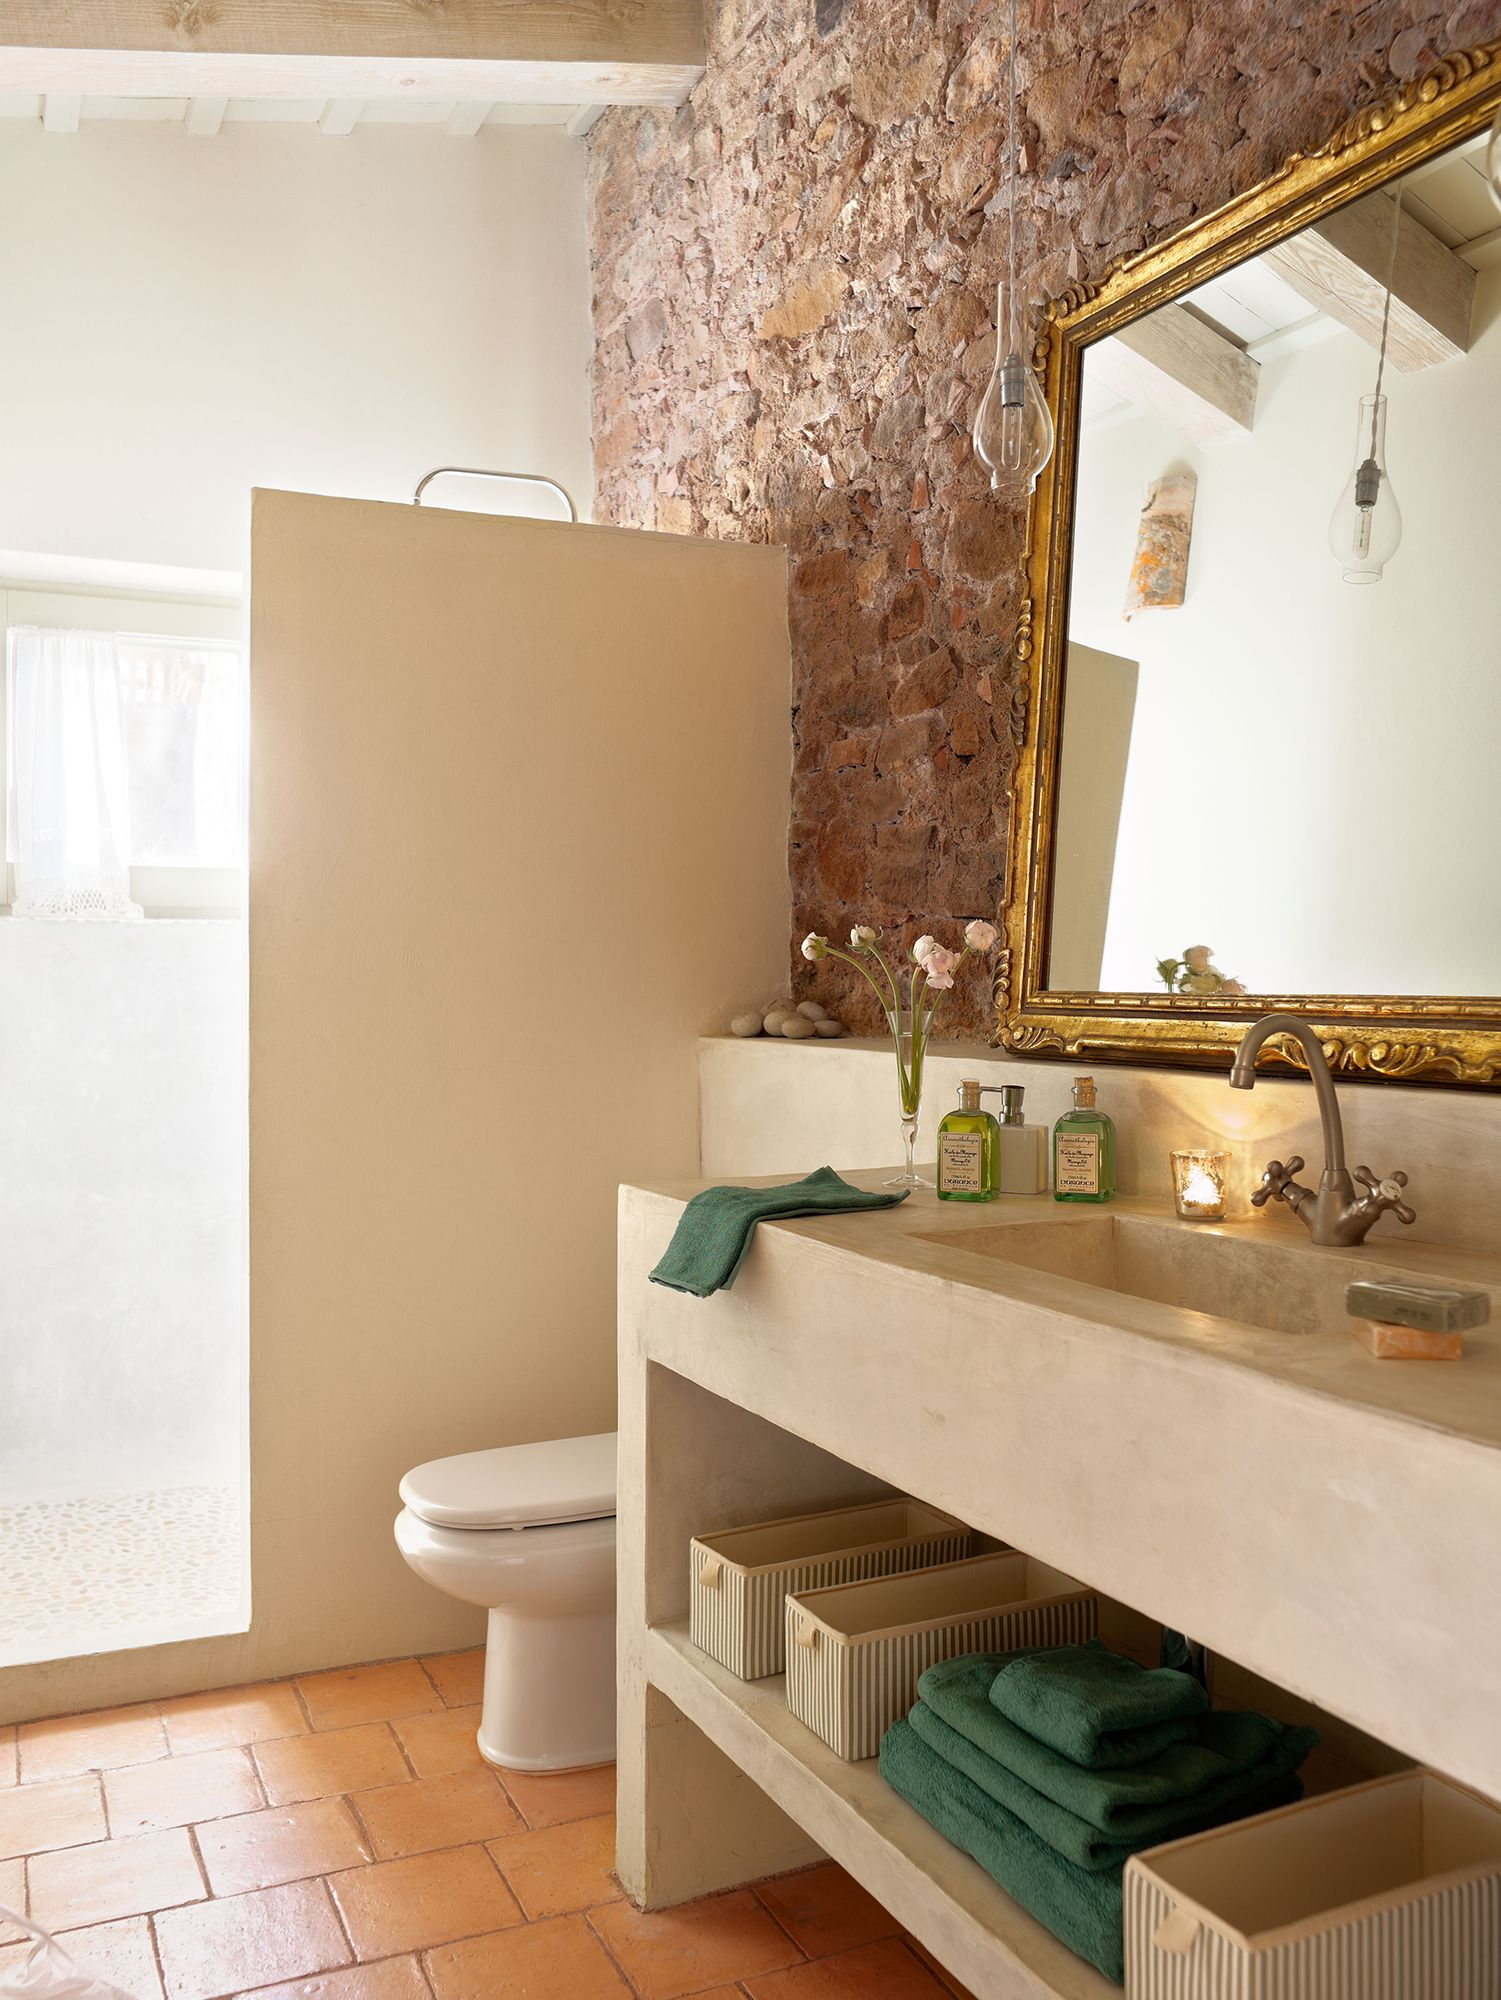 Mueble Rustico Baño Tipo Libro Fürdő Bathroom Pinterest Bathroom Mirror és